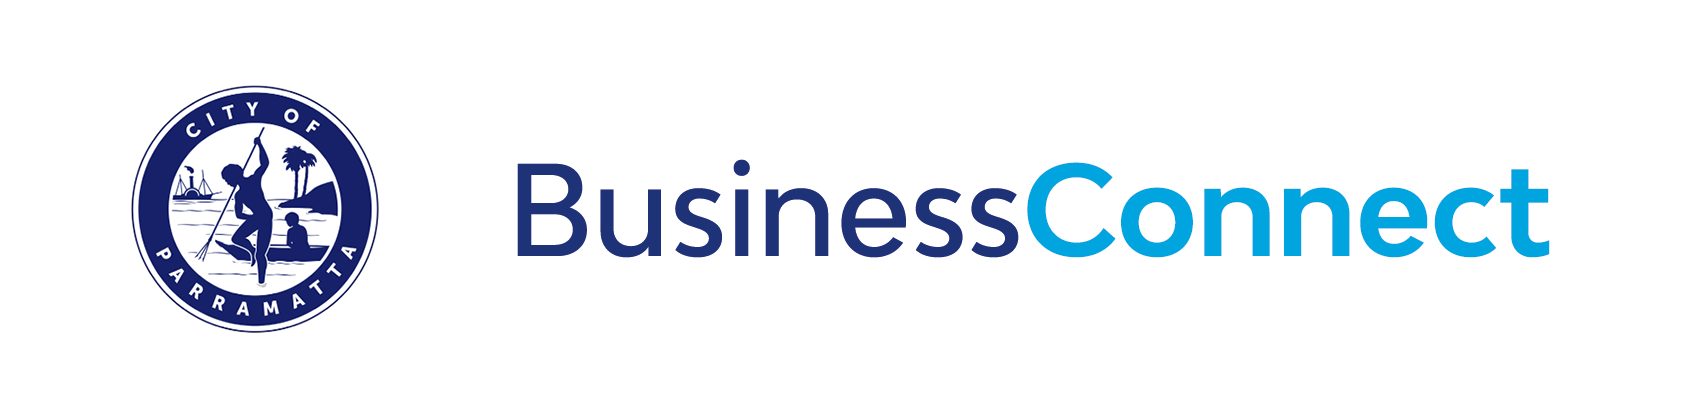 Council and Business Connect